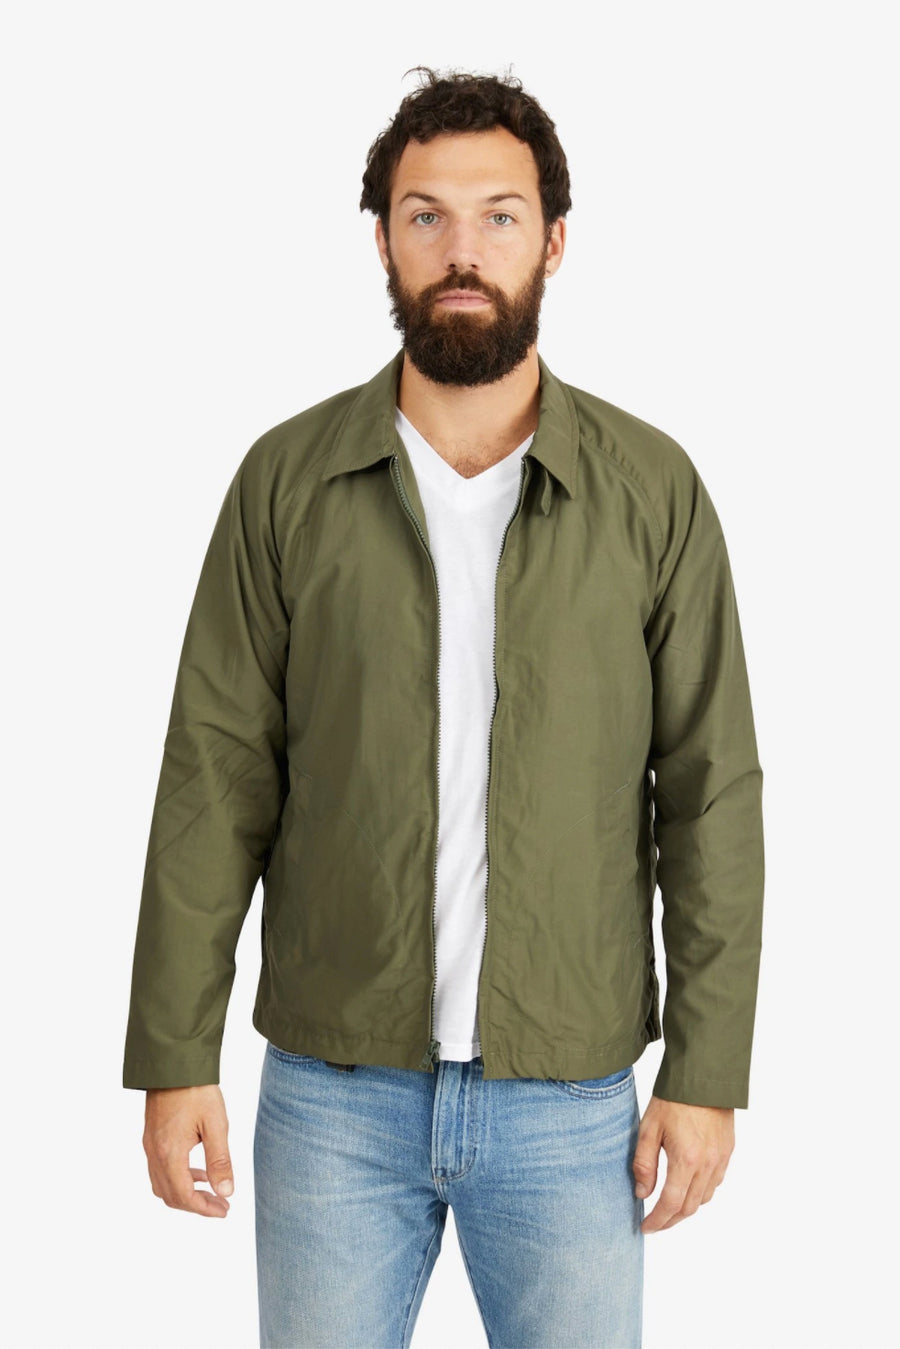 Drizzler Jacket - Green - Pavilion